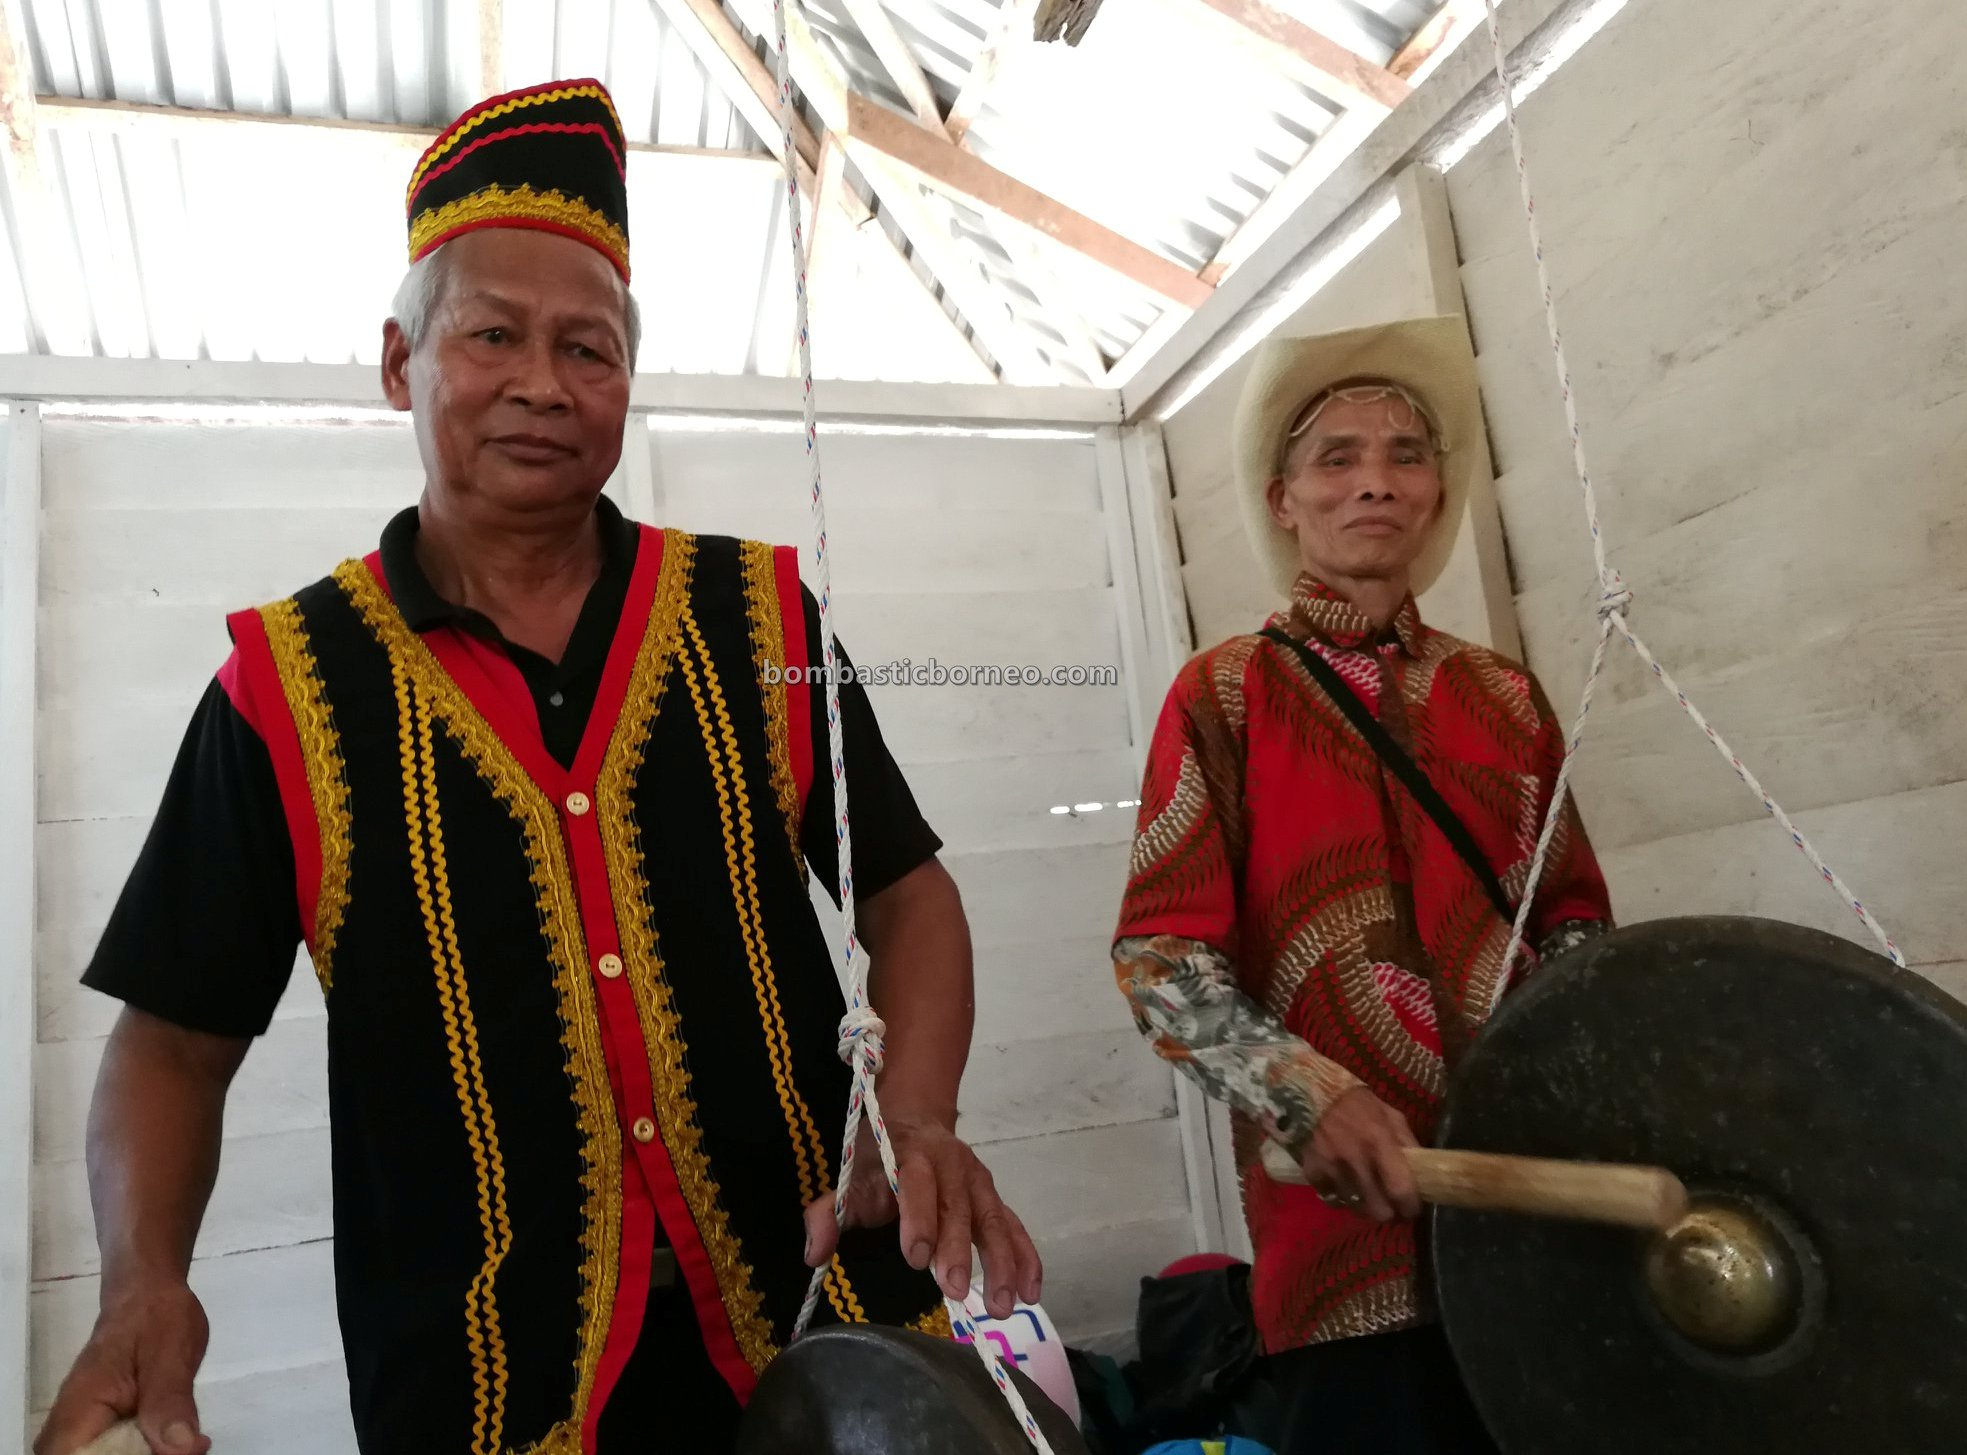 Pesta Nyarok Biya, Bengoh Dam Resettlement Scheme, authentic, traditional, culture, budaya, event, native, Gawai harvest festival, Semban village, Borneo, Kuching, Tourism, 古晋砂拉越马来西亚, 婆罗洲原住民丰收节